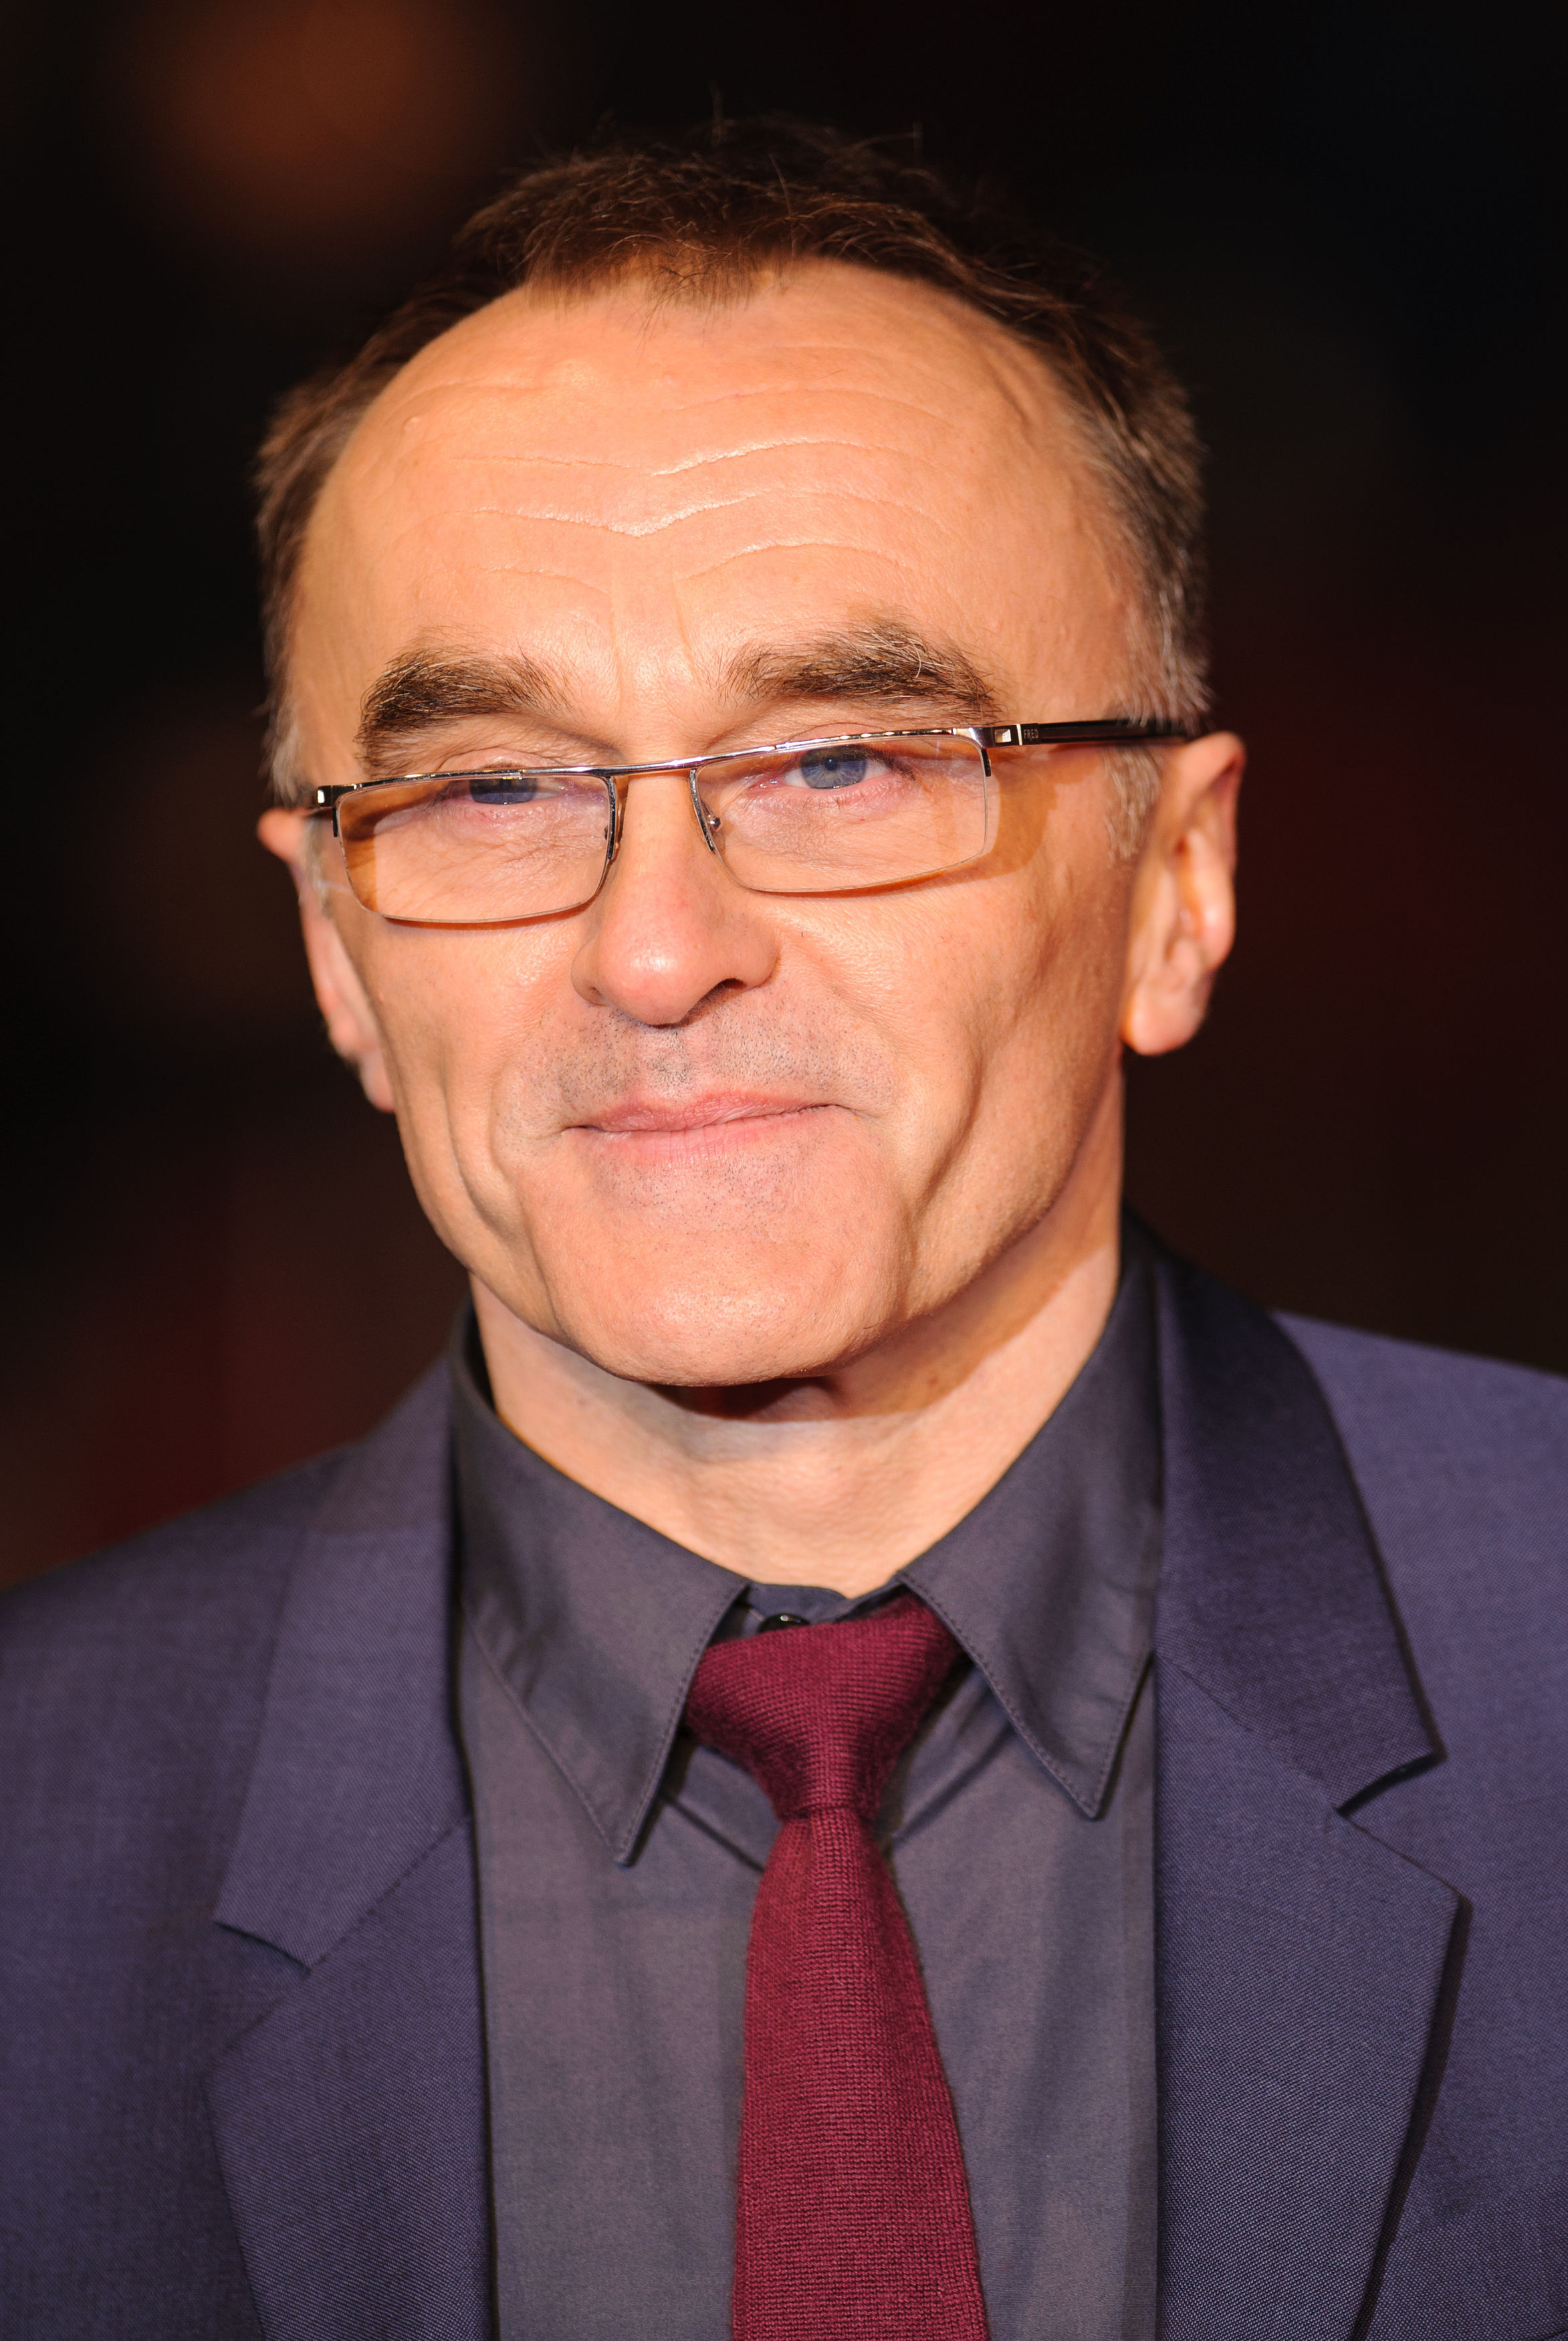 File photo dated March 19, 2013 of director Danny Boyle.